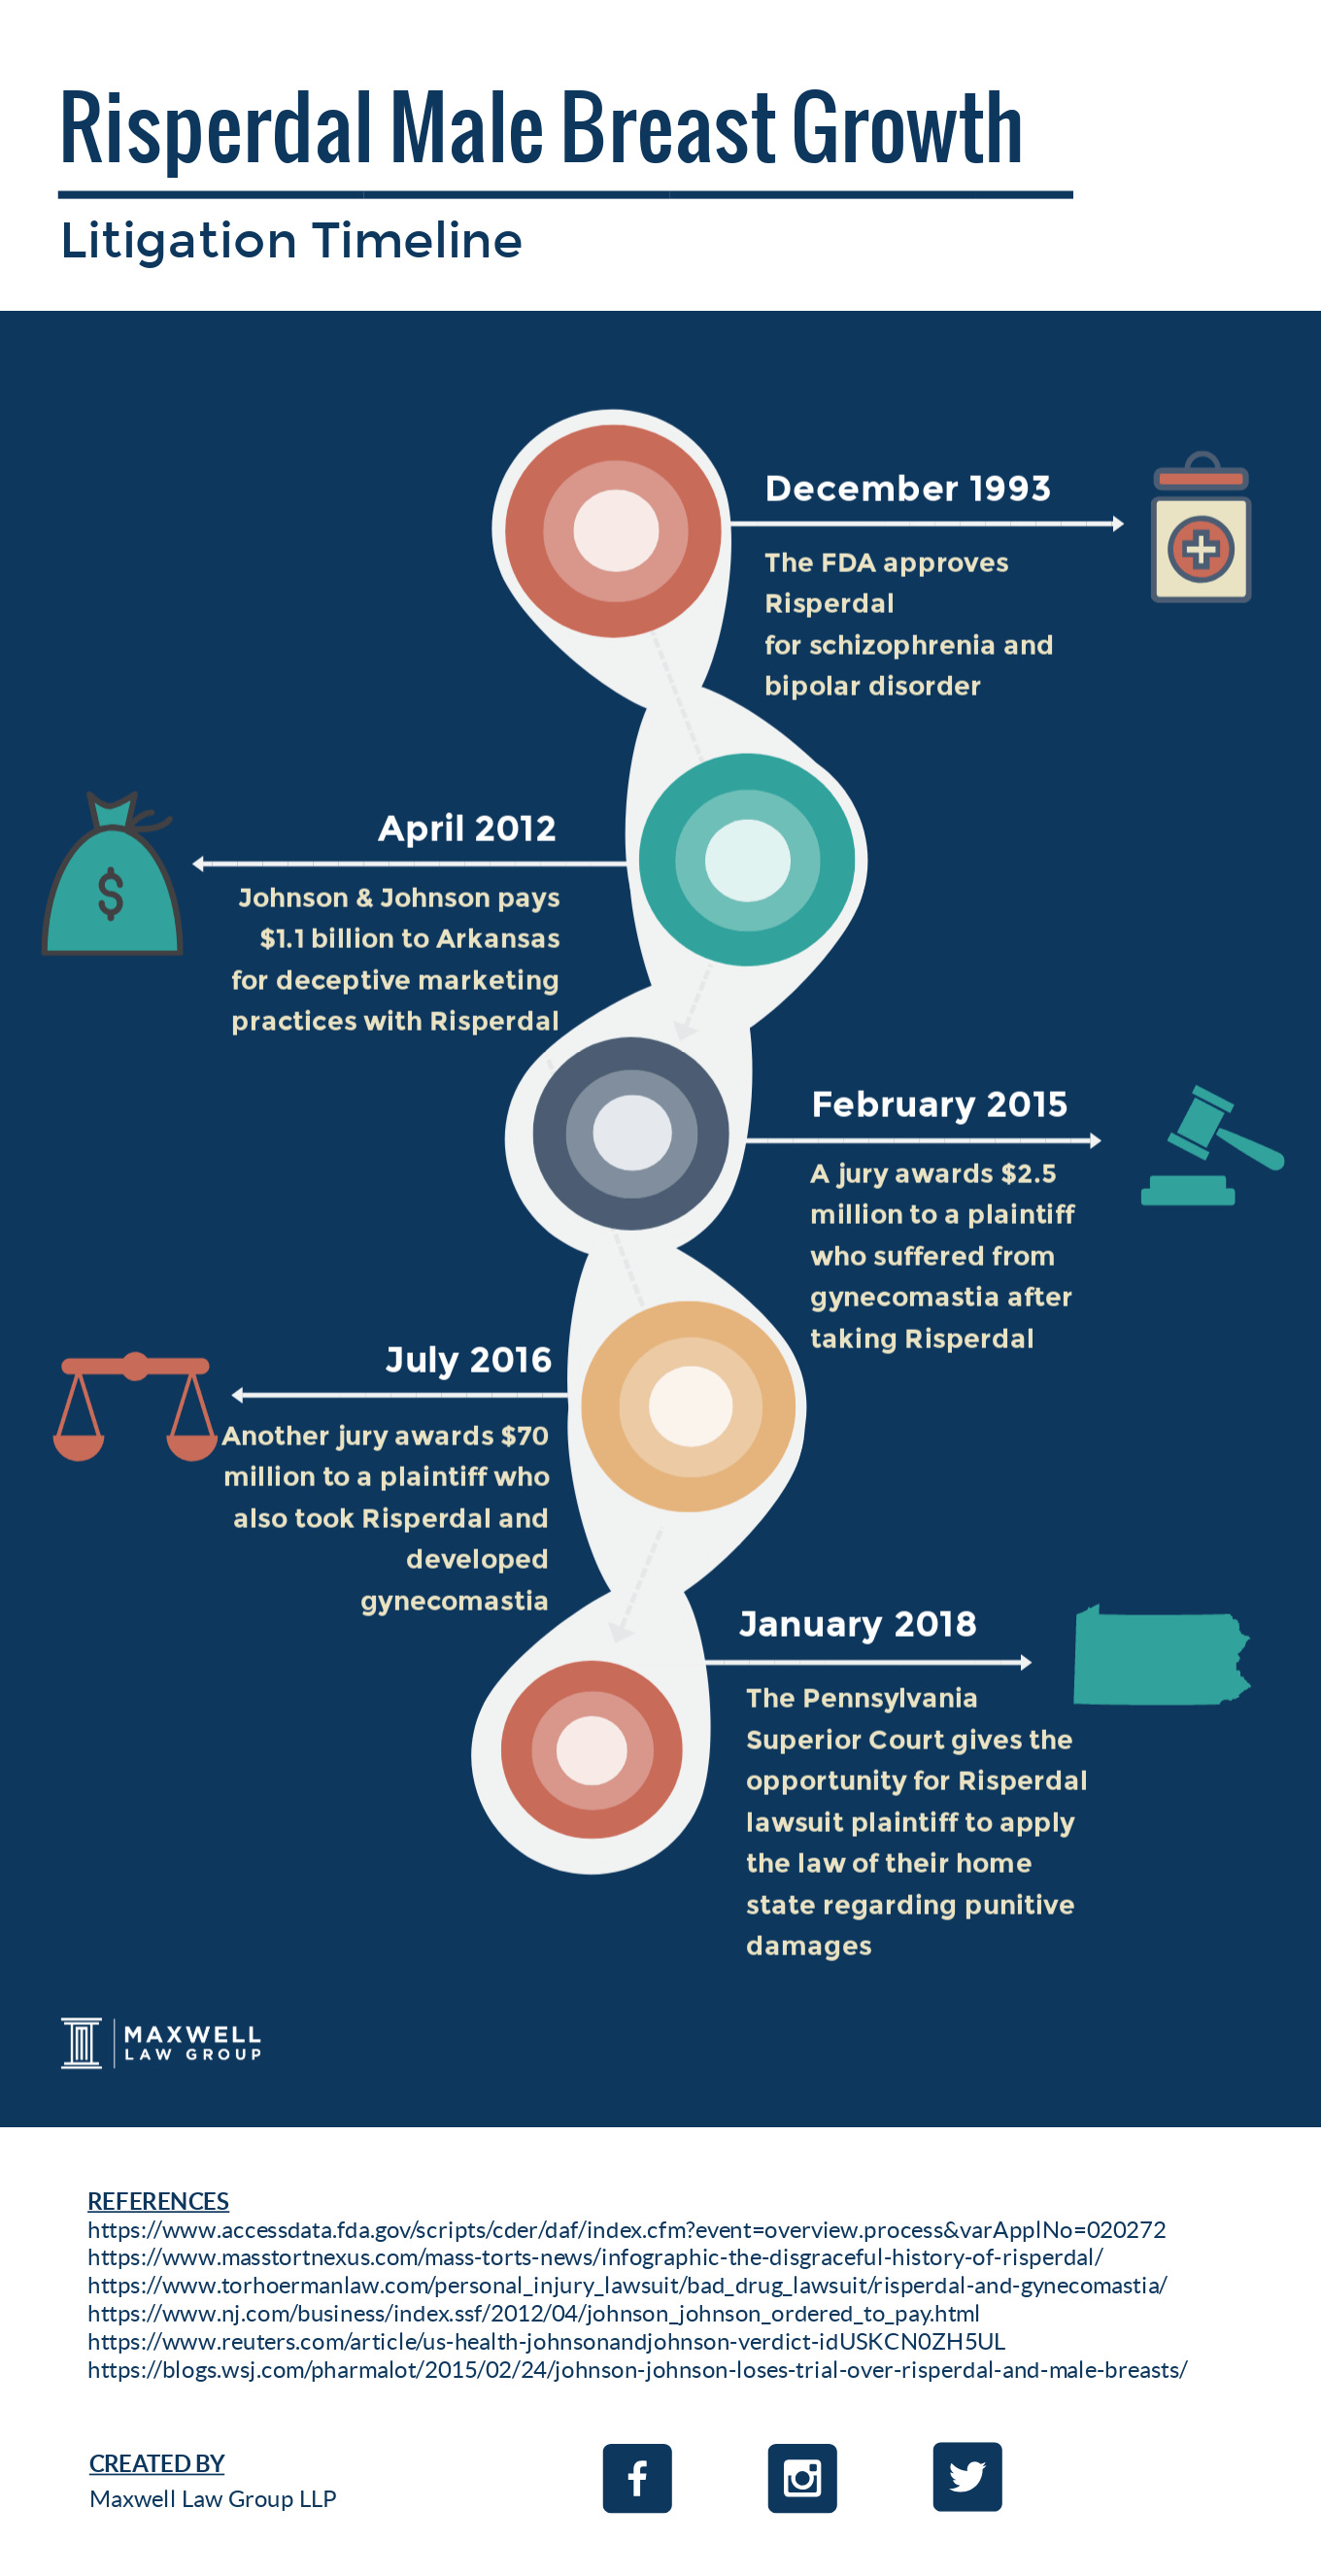 risperdal litigation timeline